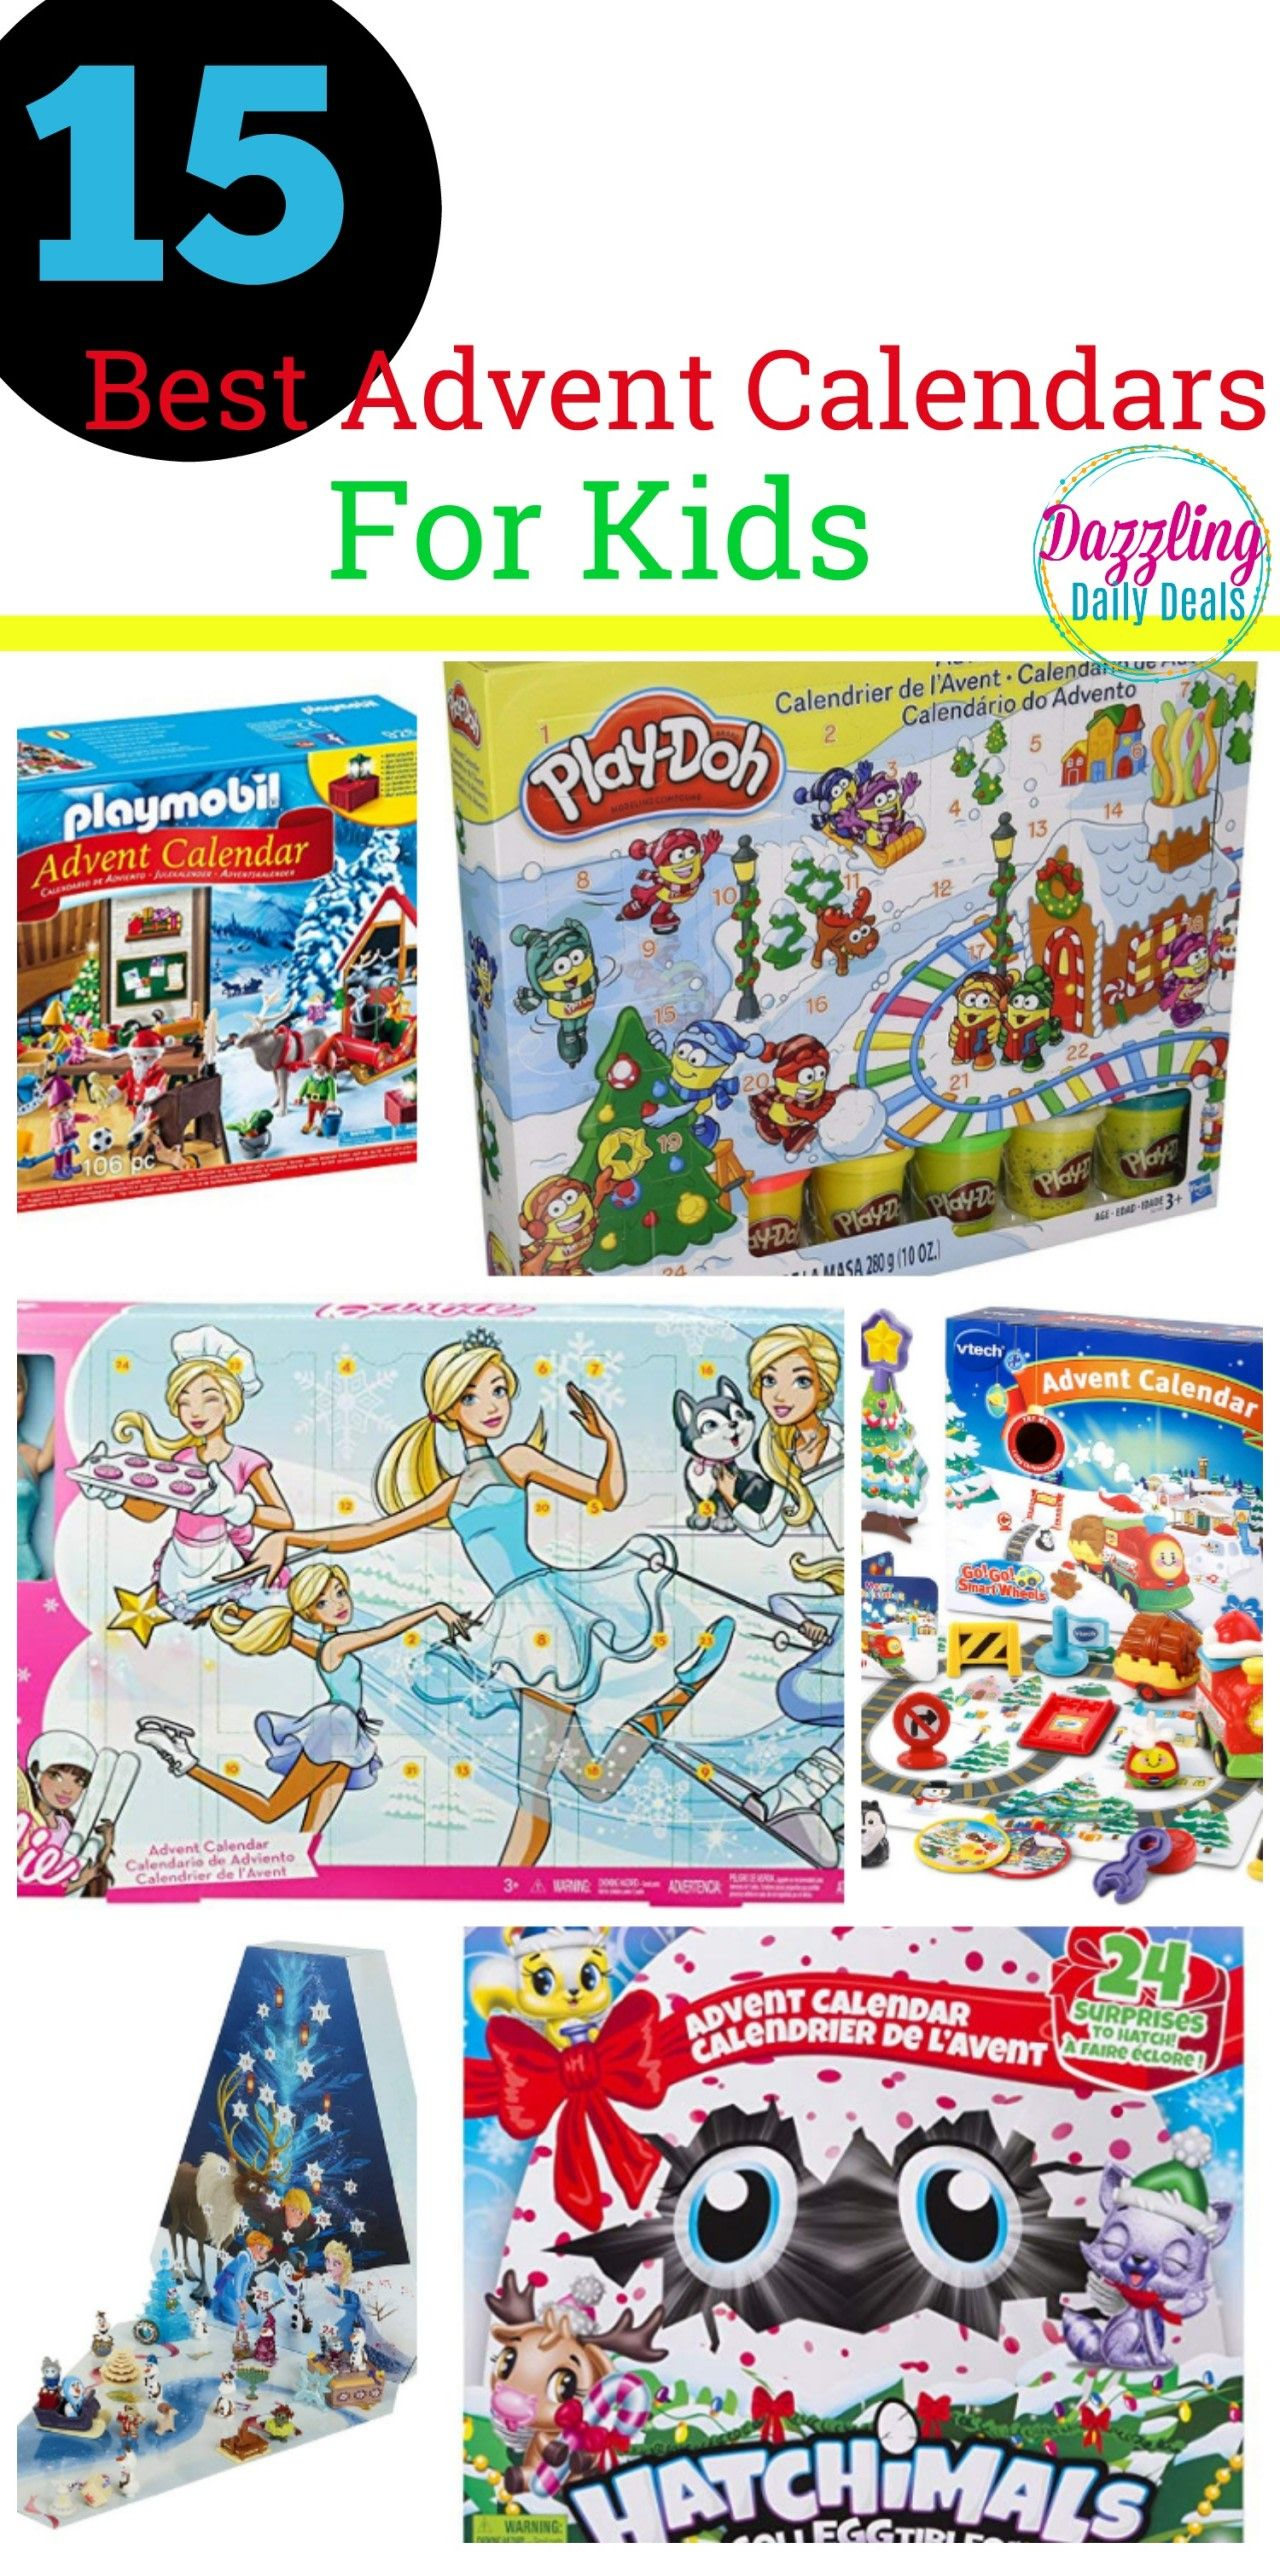 15 Of The Best Advent Calendars For Kids Dazzling Daily Deals